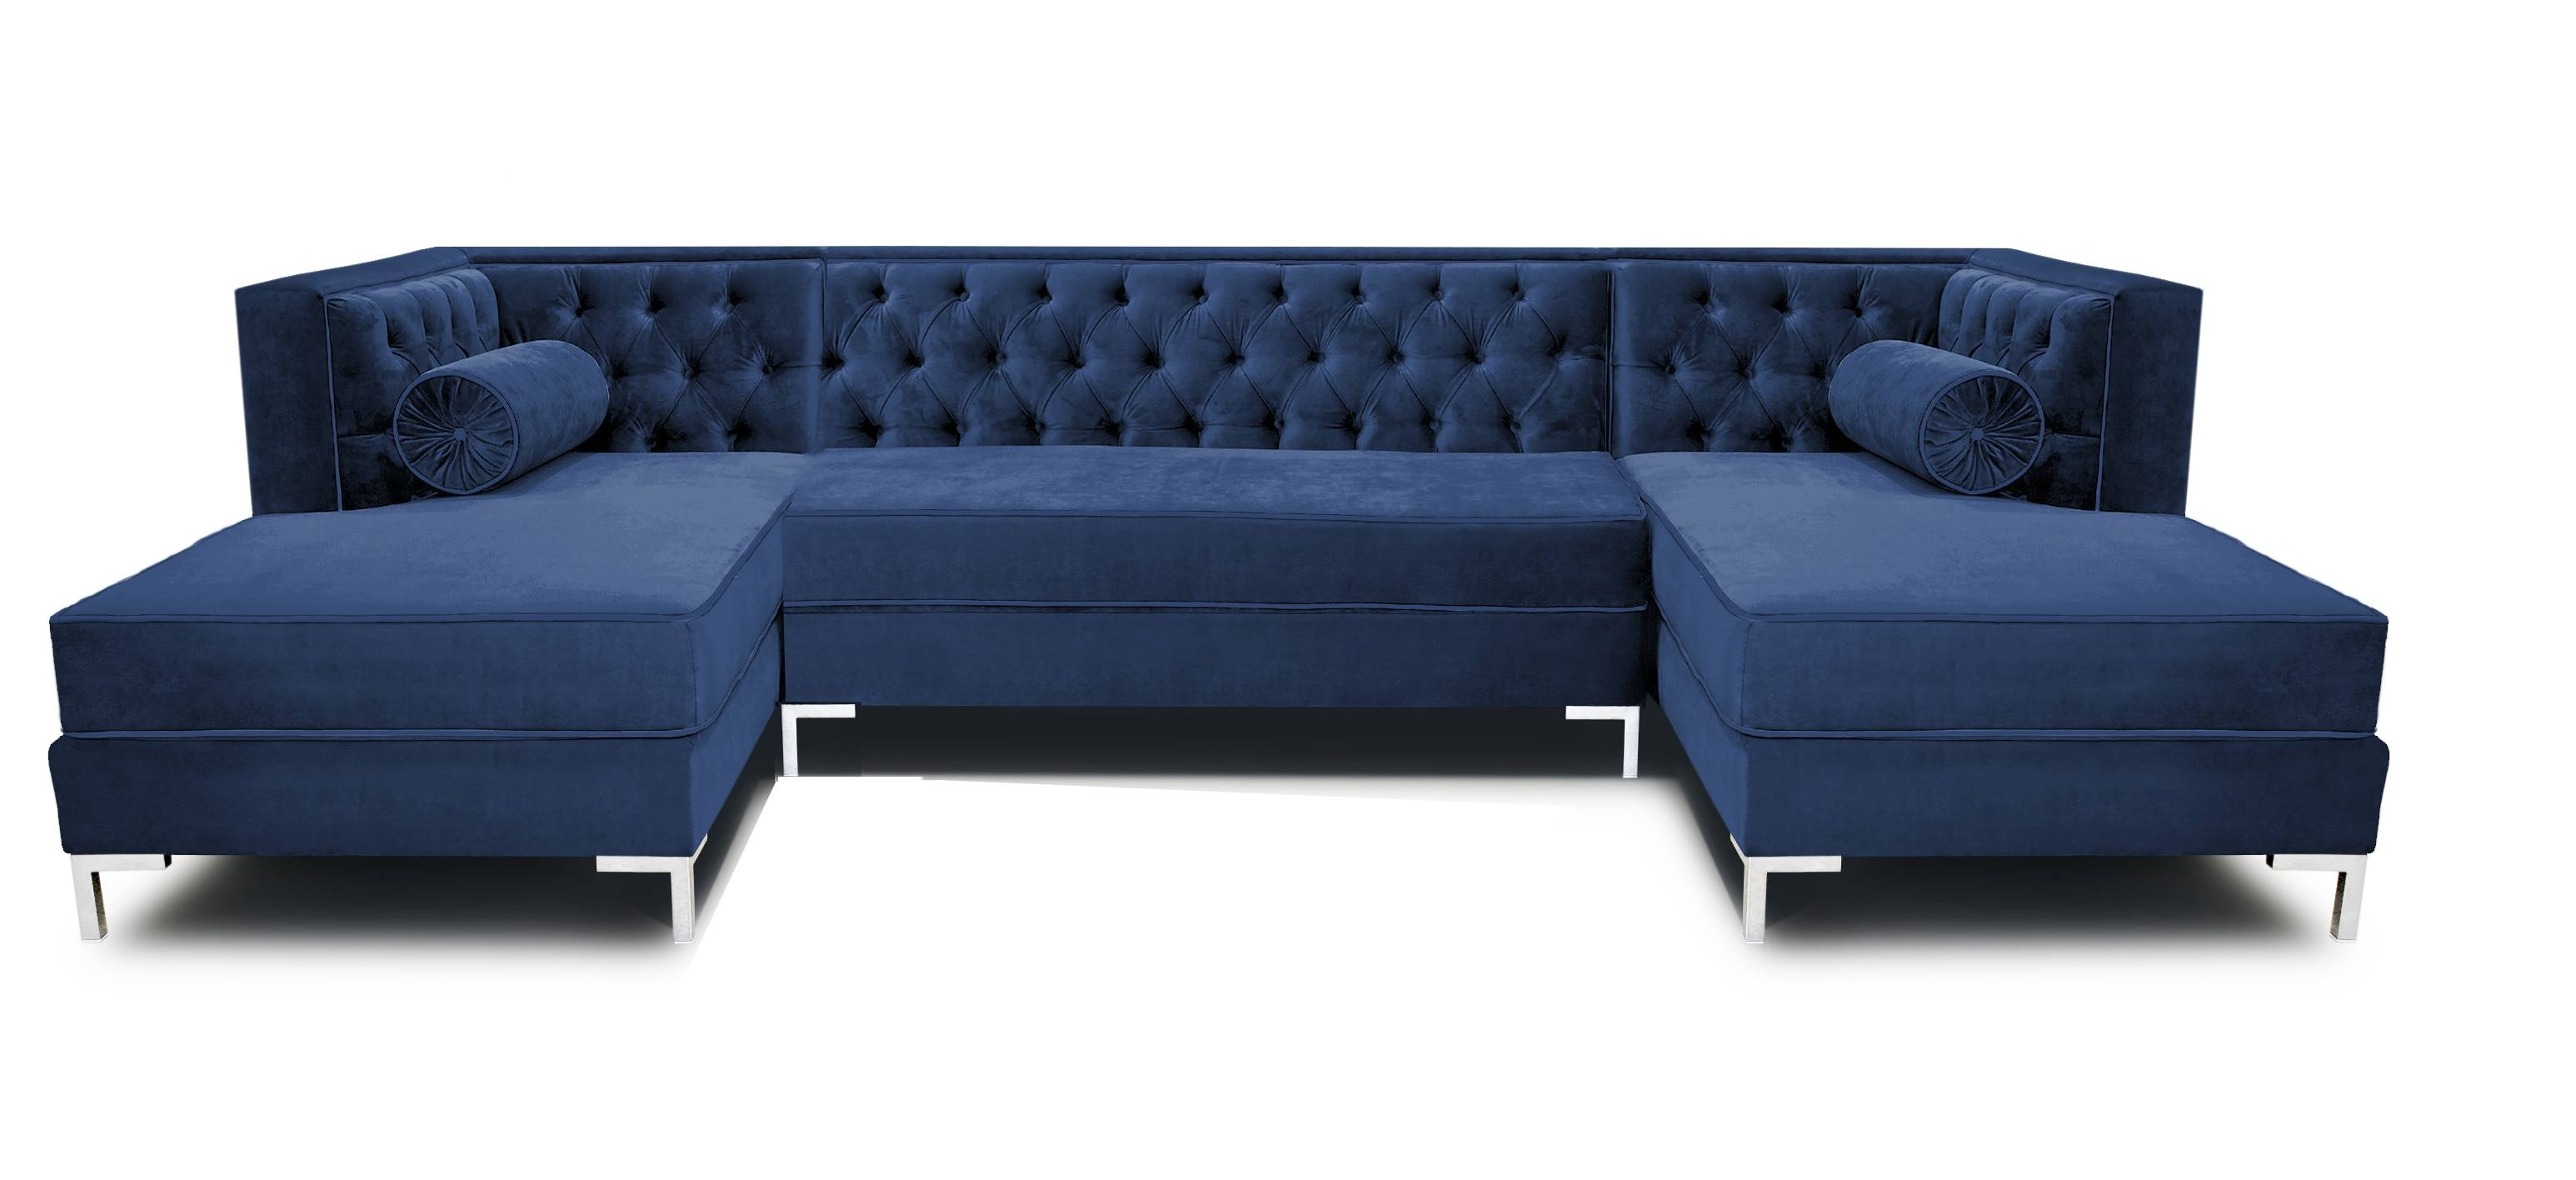 Elegant 10 Foot Sectional Sofa 42 On Leggett And Platt Sleeper in 10 Foot Sectional Sofa (Image 18 of 30)